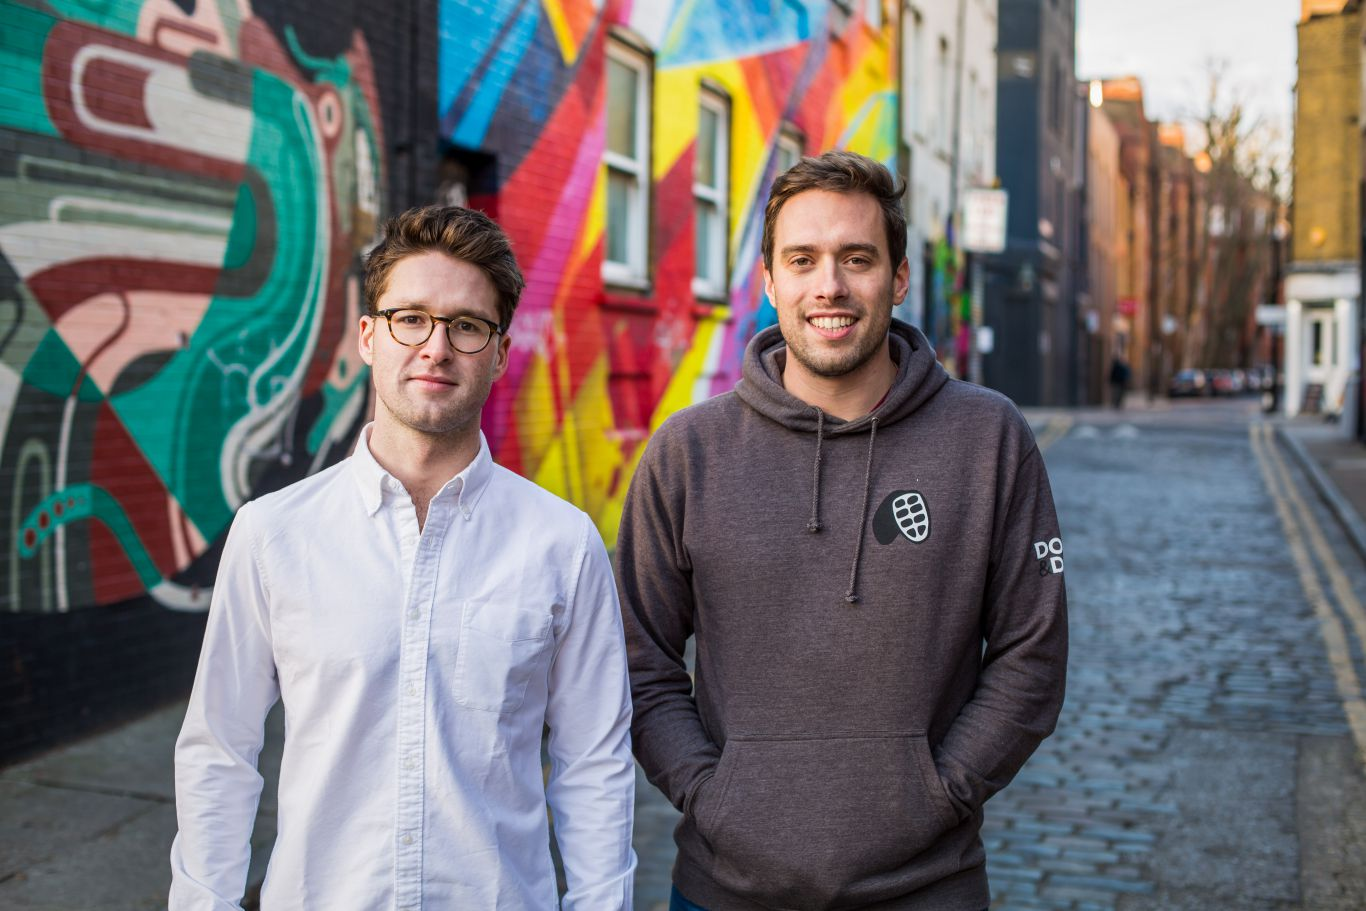 Doisy & Dam founders Ed and Rich in alleyway